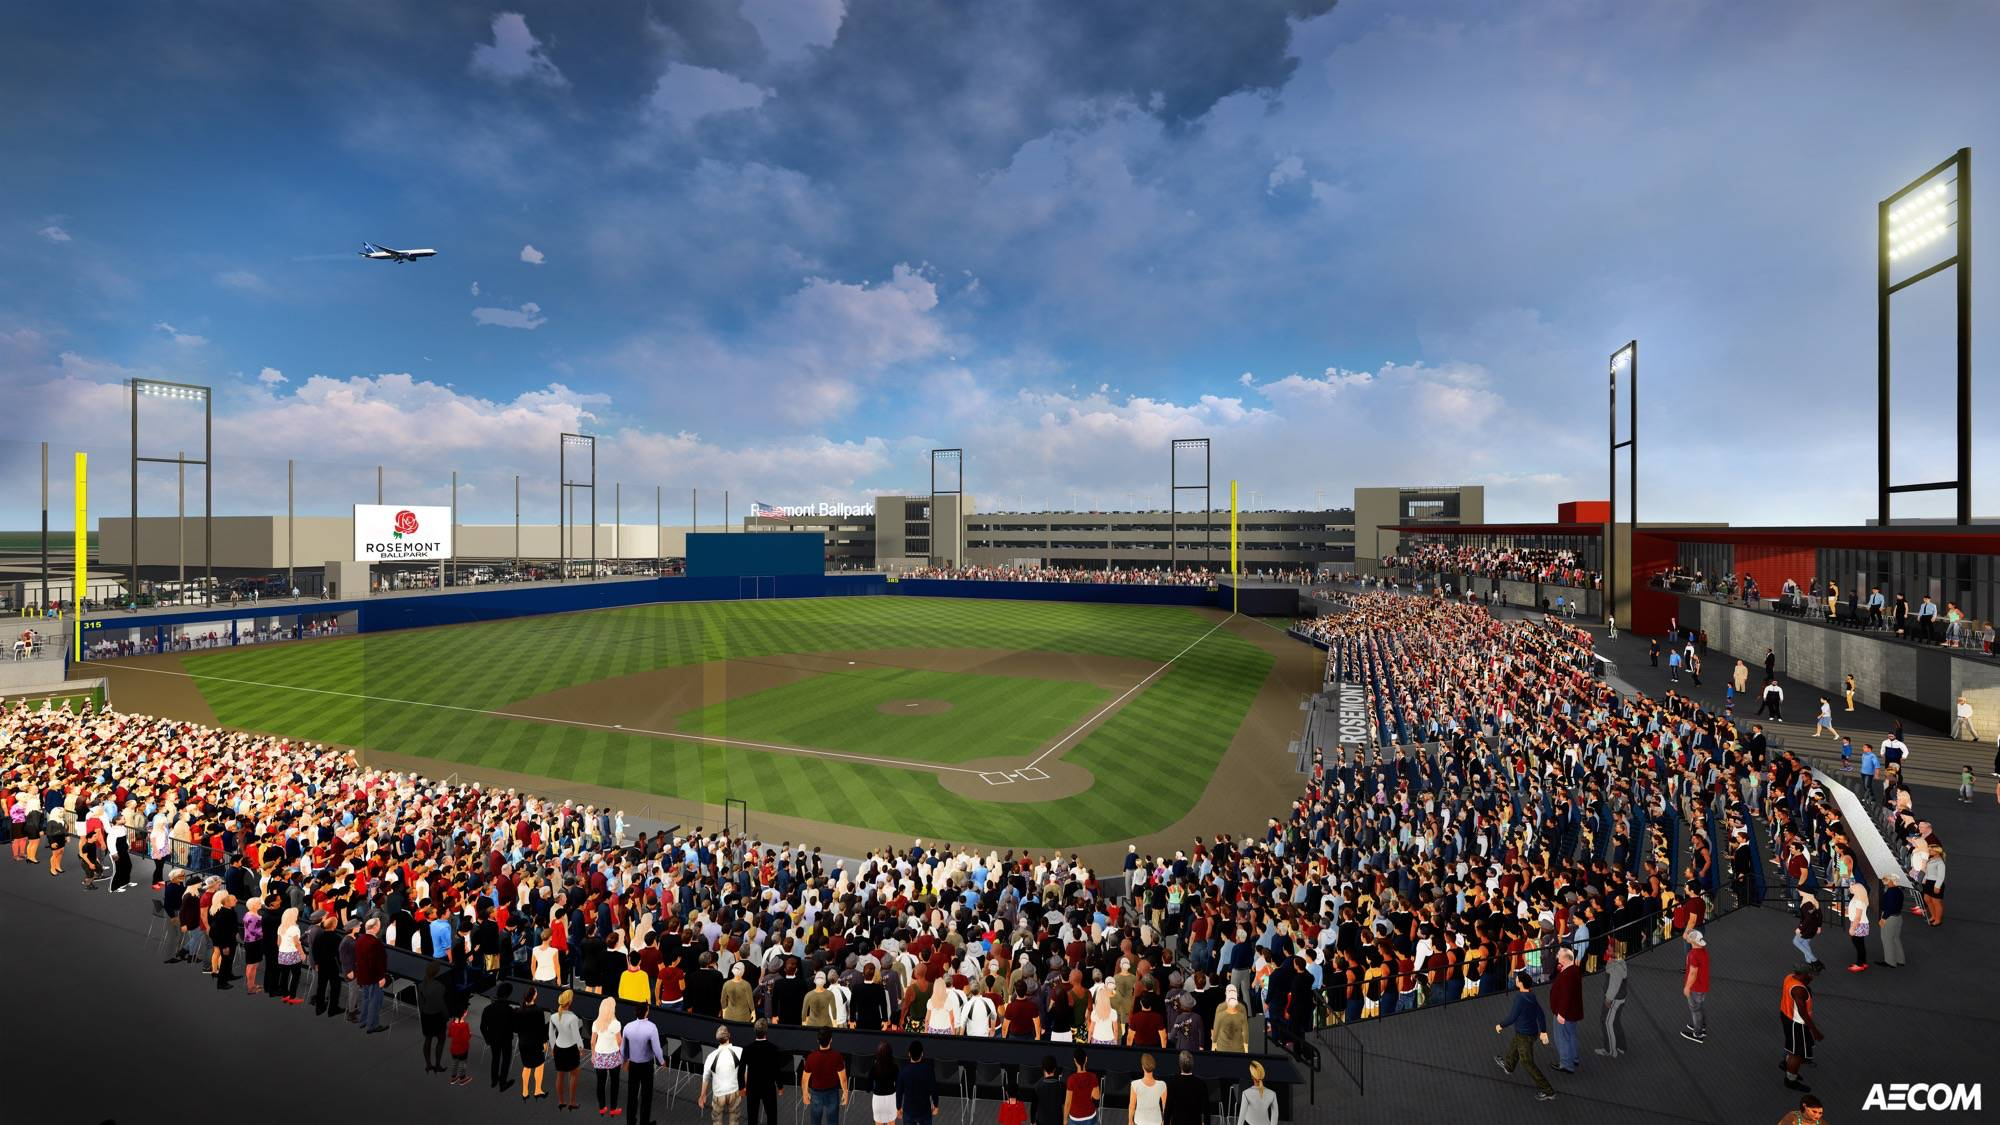 Food vendor chosen for new Rosemont baseball stadium